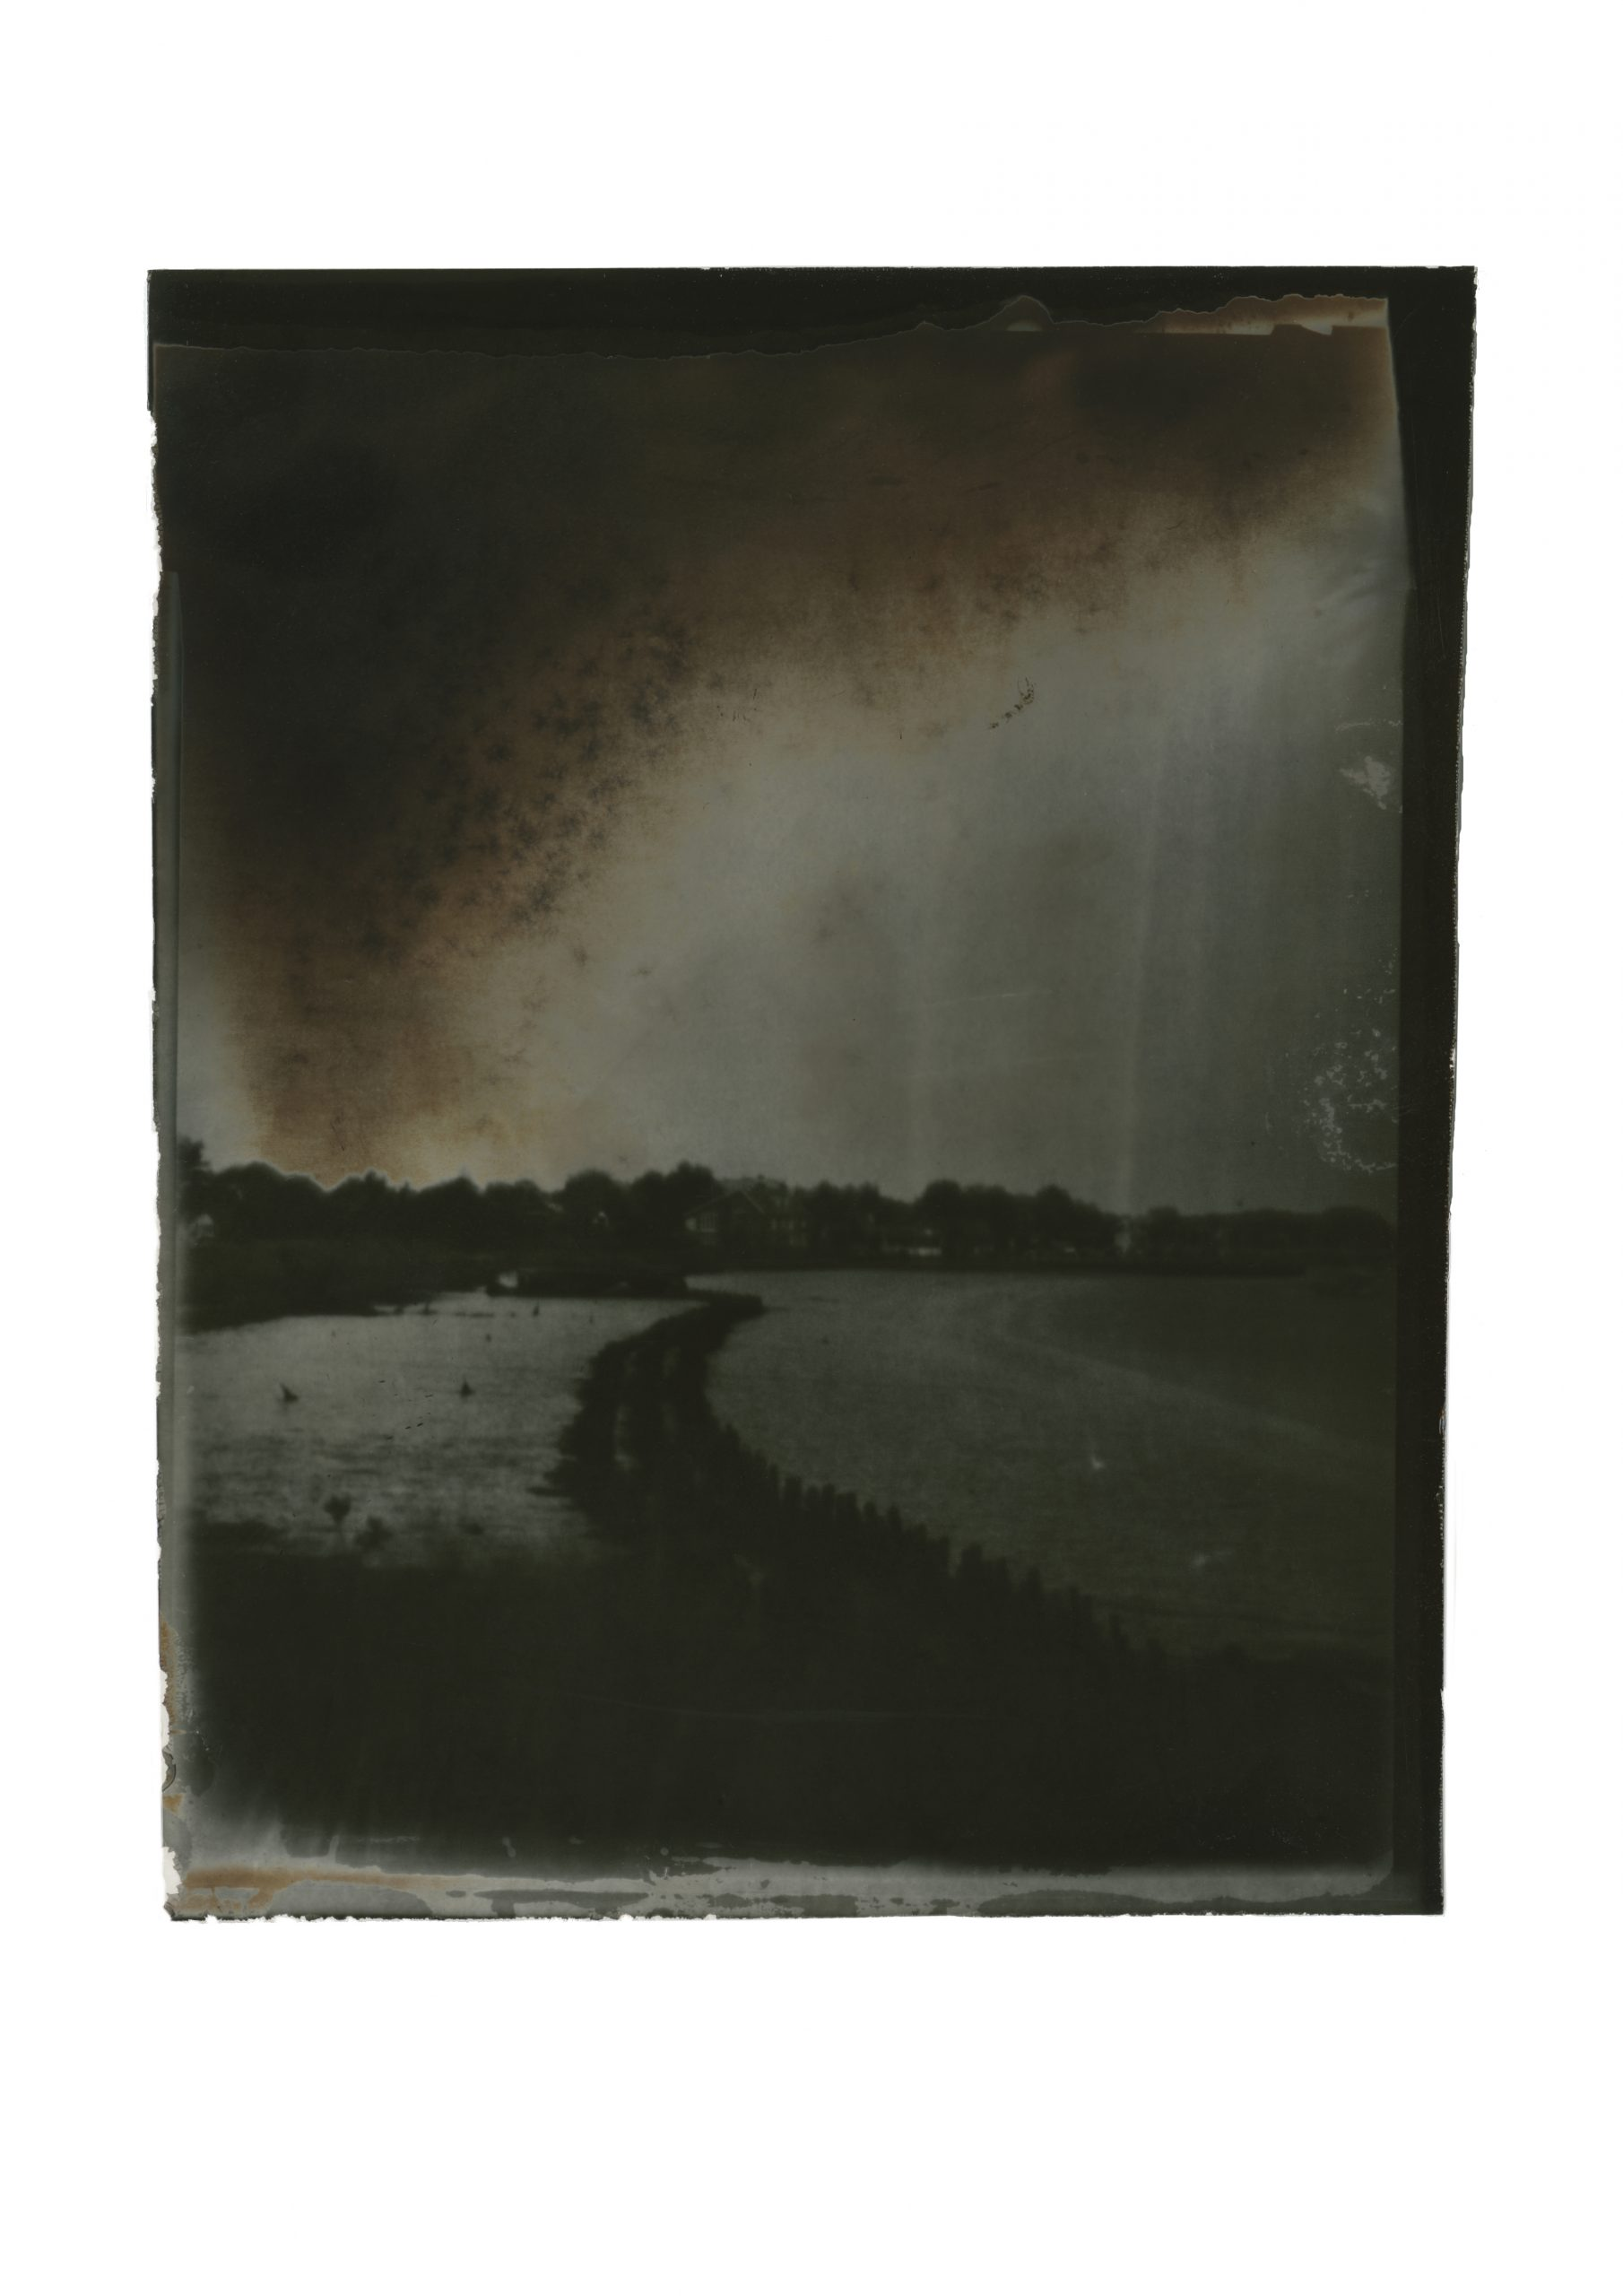 very dark sweeping sky, hints of orange against a steely grey. a coastal path straddled by two bodies of dark water leading to town on the horizon